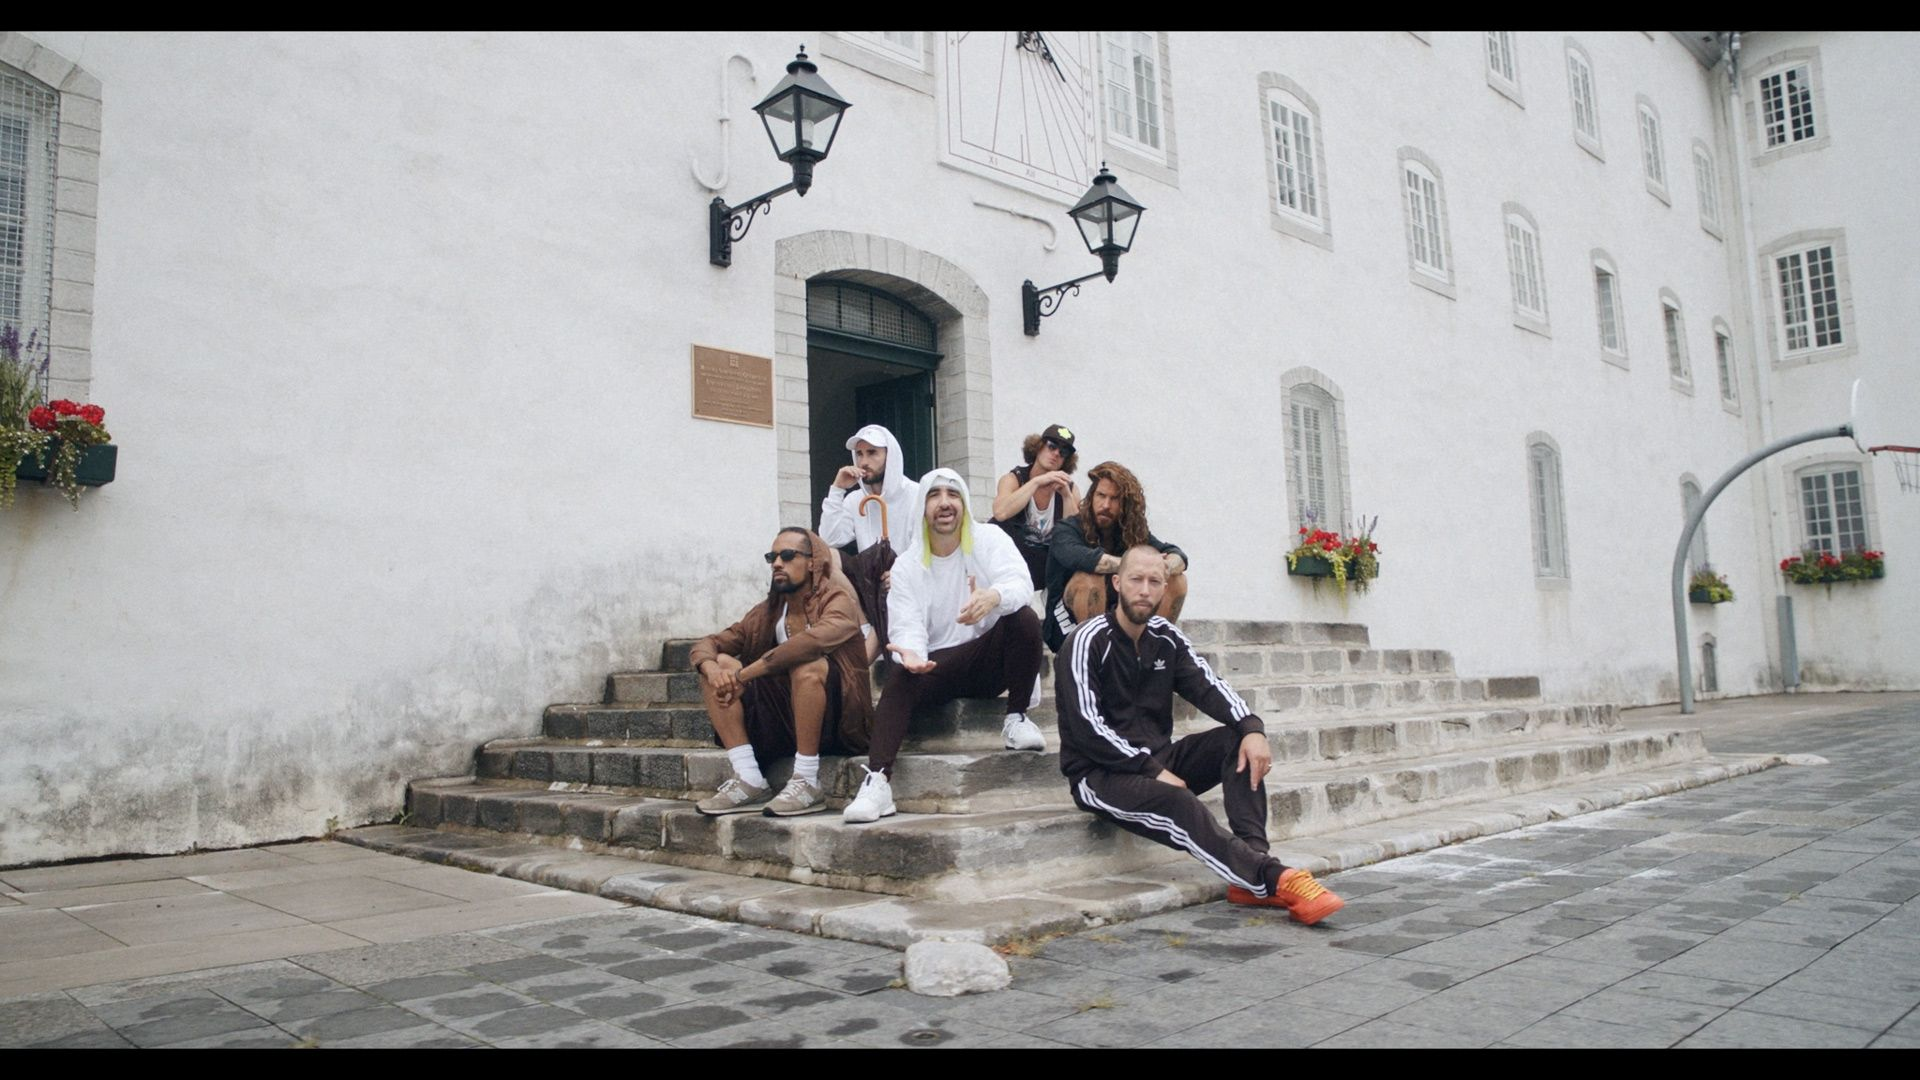 Alaclair Ensemble hip hop collective members sitting in stone stairs of building looking at camera for music video Felix filmed by Les Gamins featuring rapper Souldia